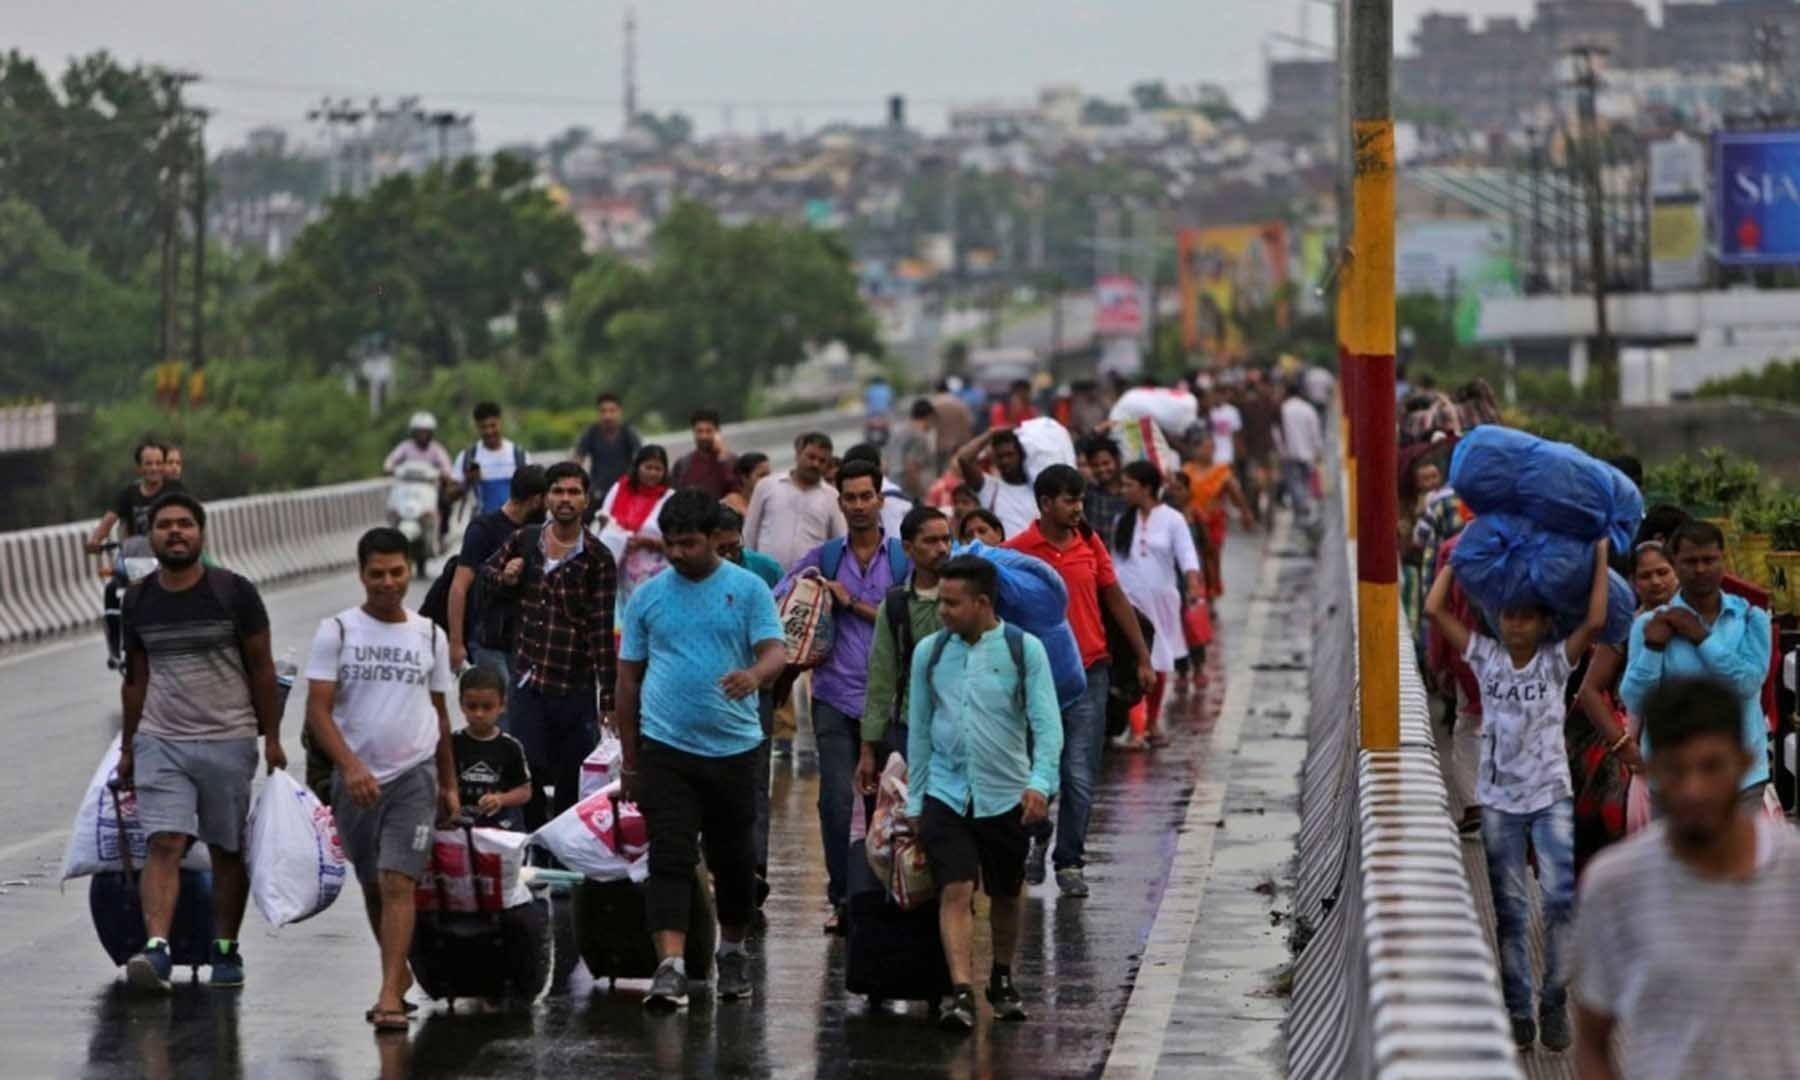 Stranded Indian tourists walk to a railway station during restrictions in IoK on Aug 5. — AP